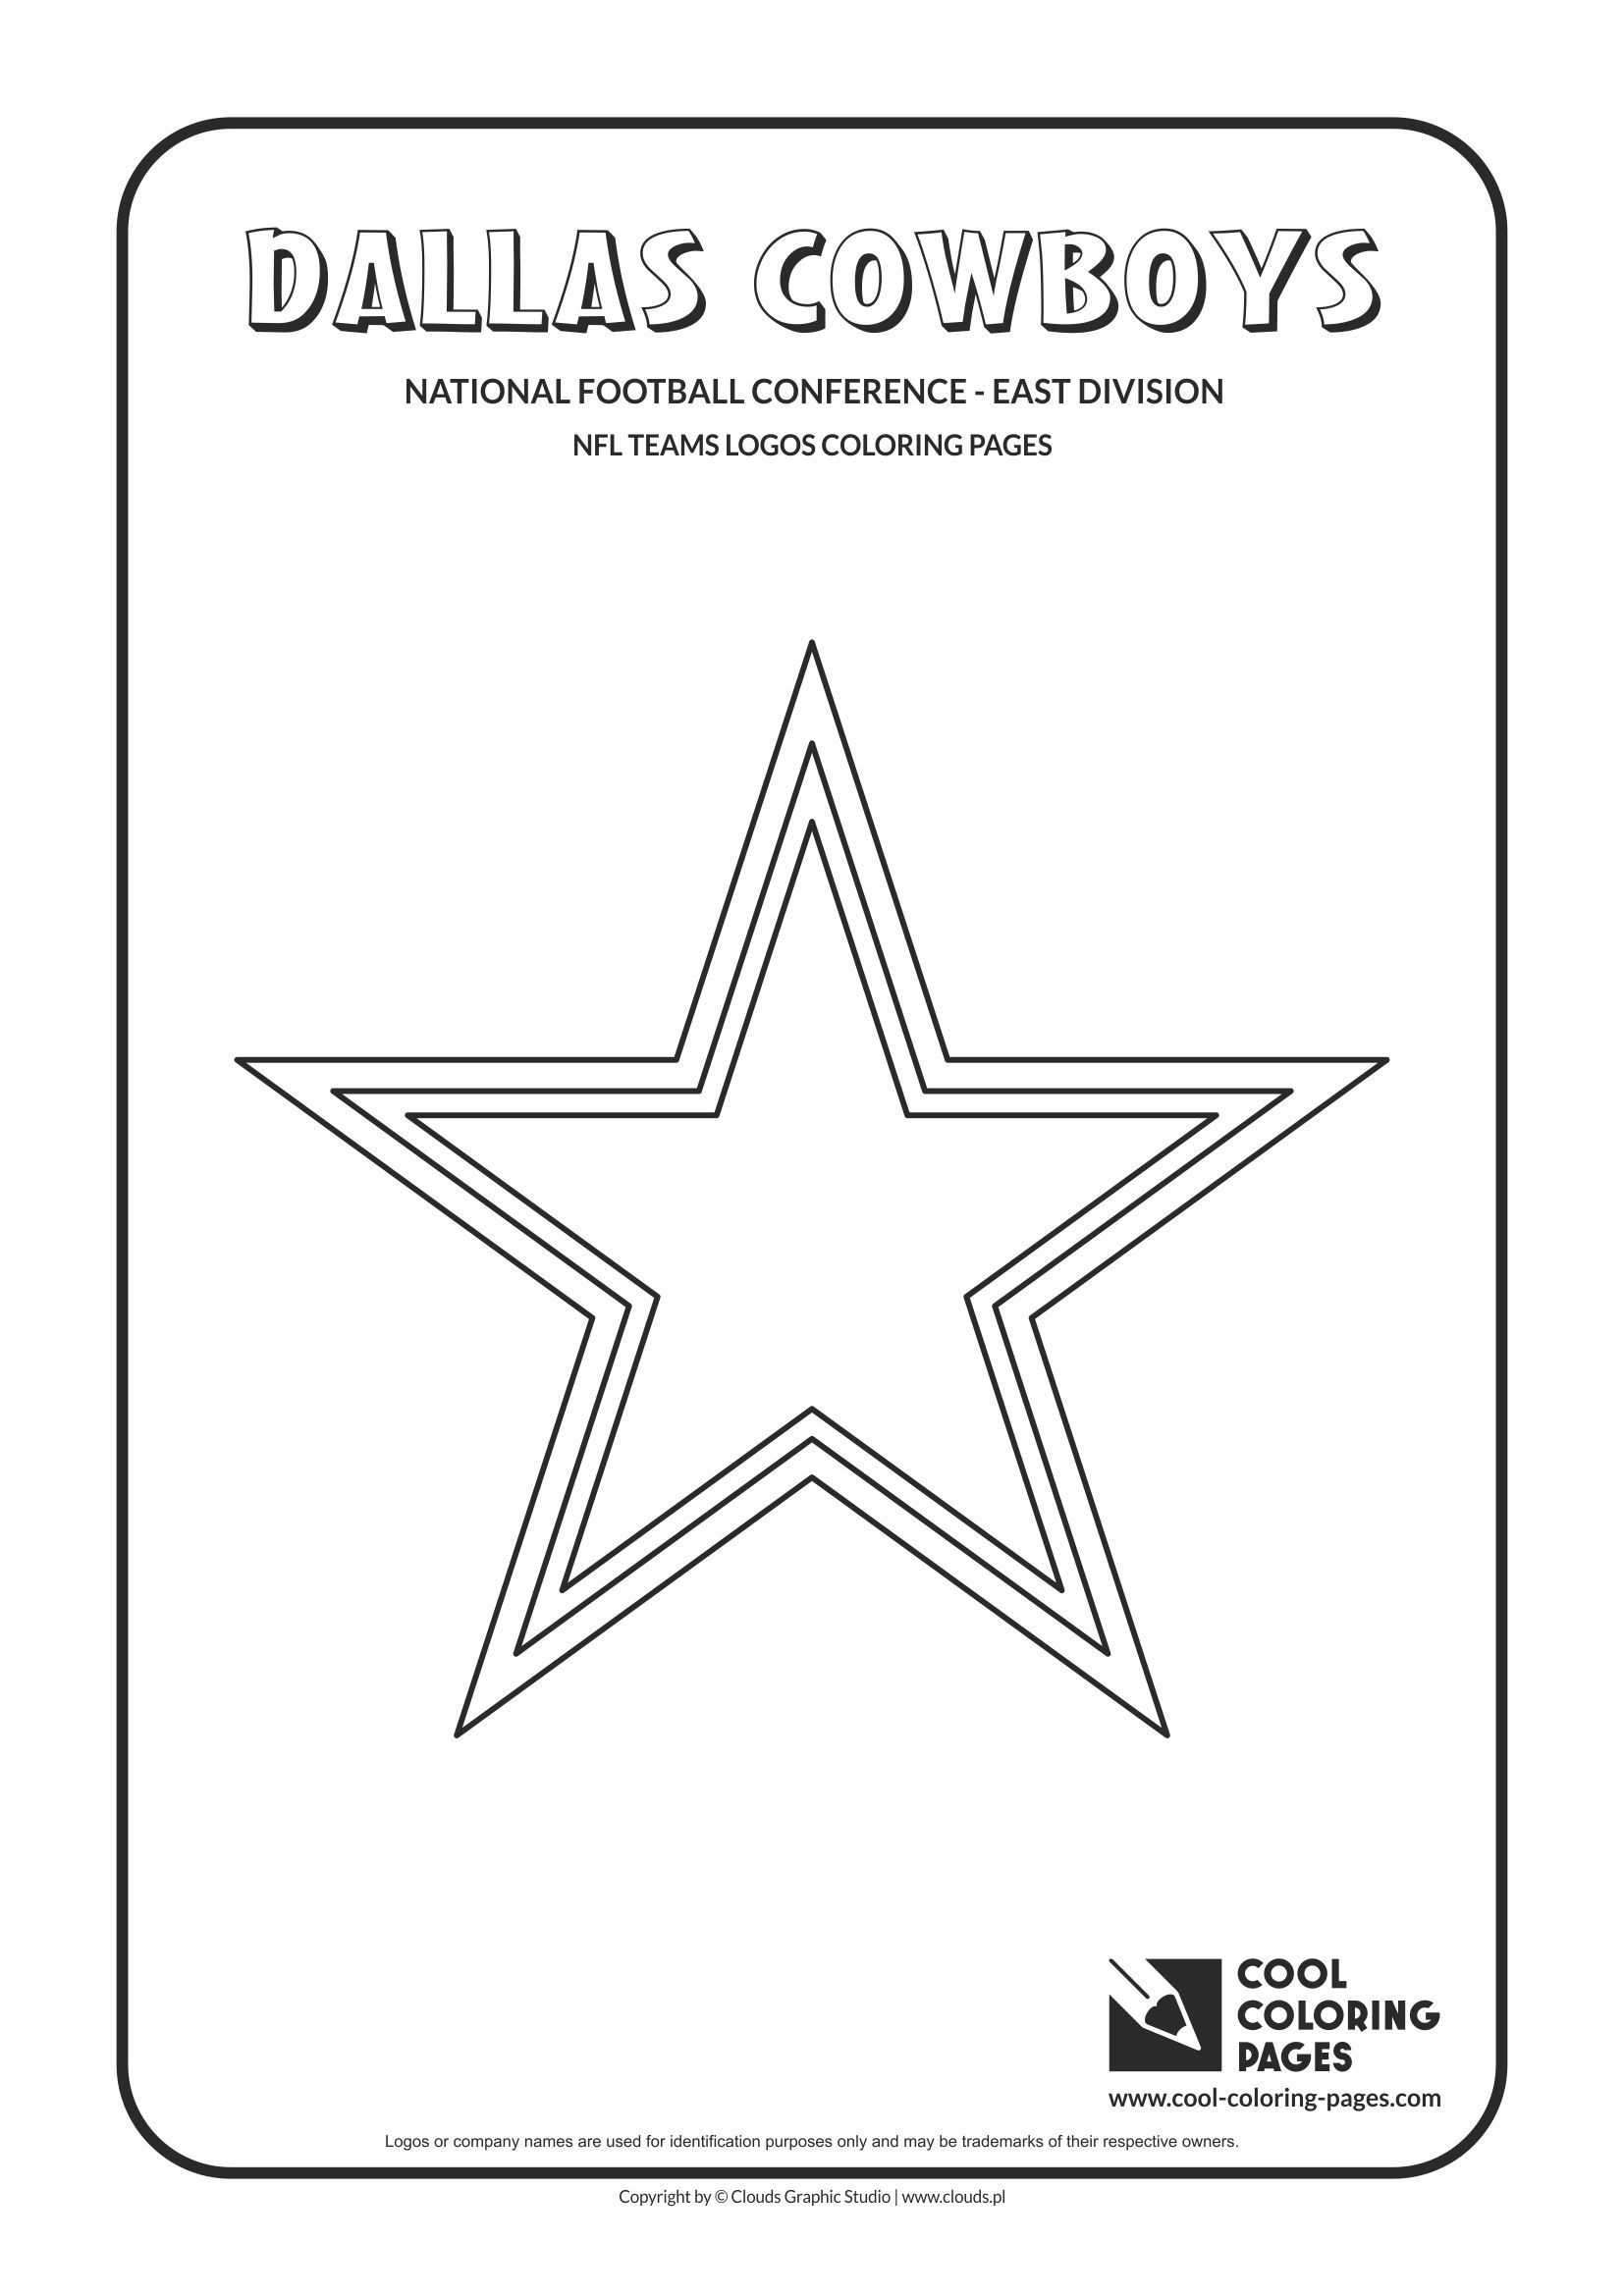 Dallas Cowboys Coloring Pages  to Print 1j - To print for your project